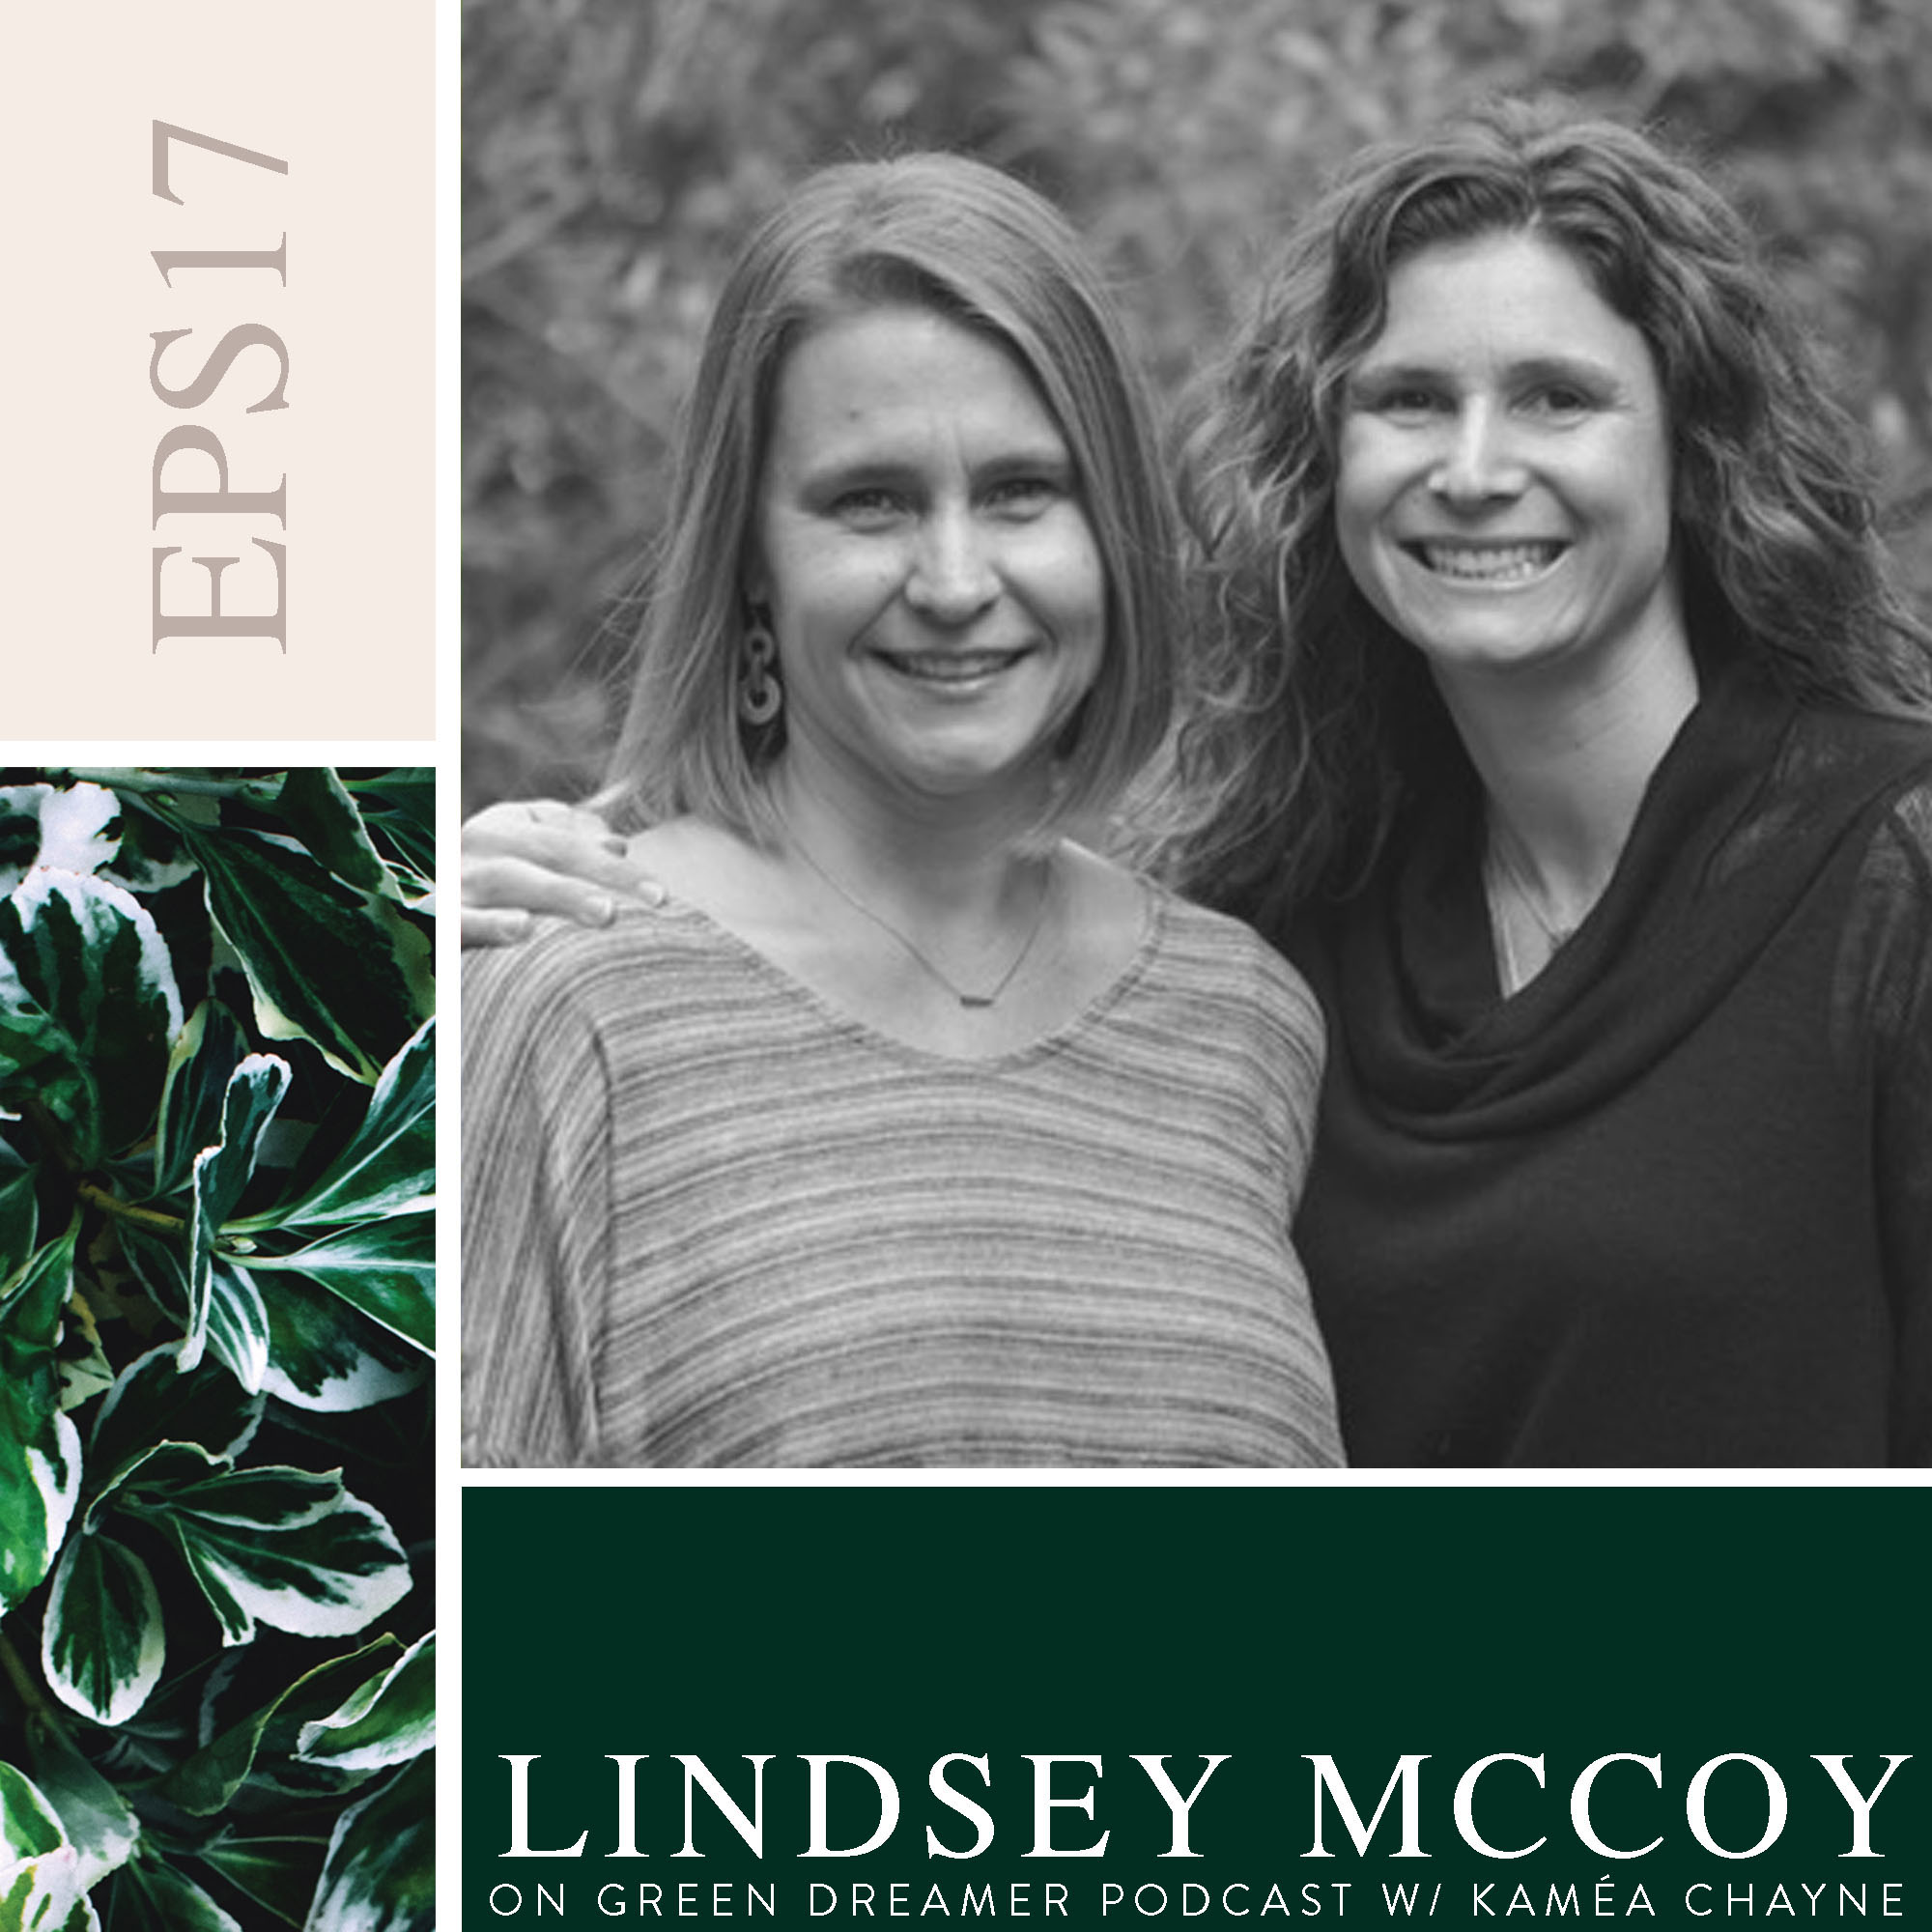 Lindsey McCoy on Sustainability via Green Dreamer Podcast with Kaméa Chayne